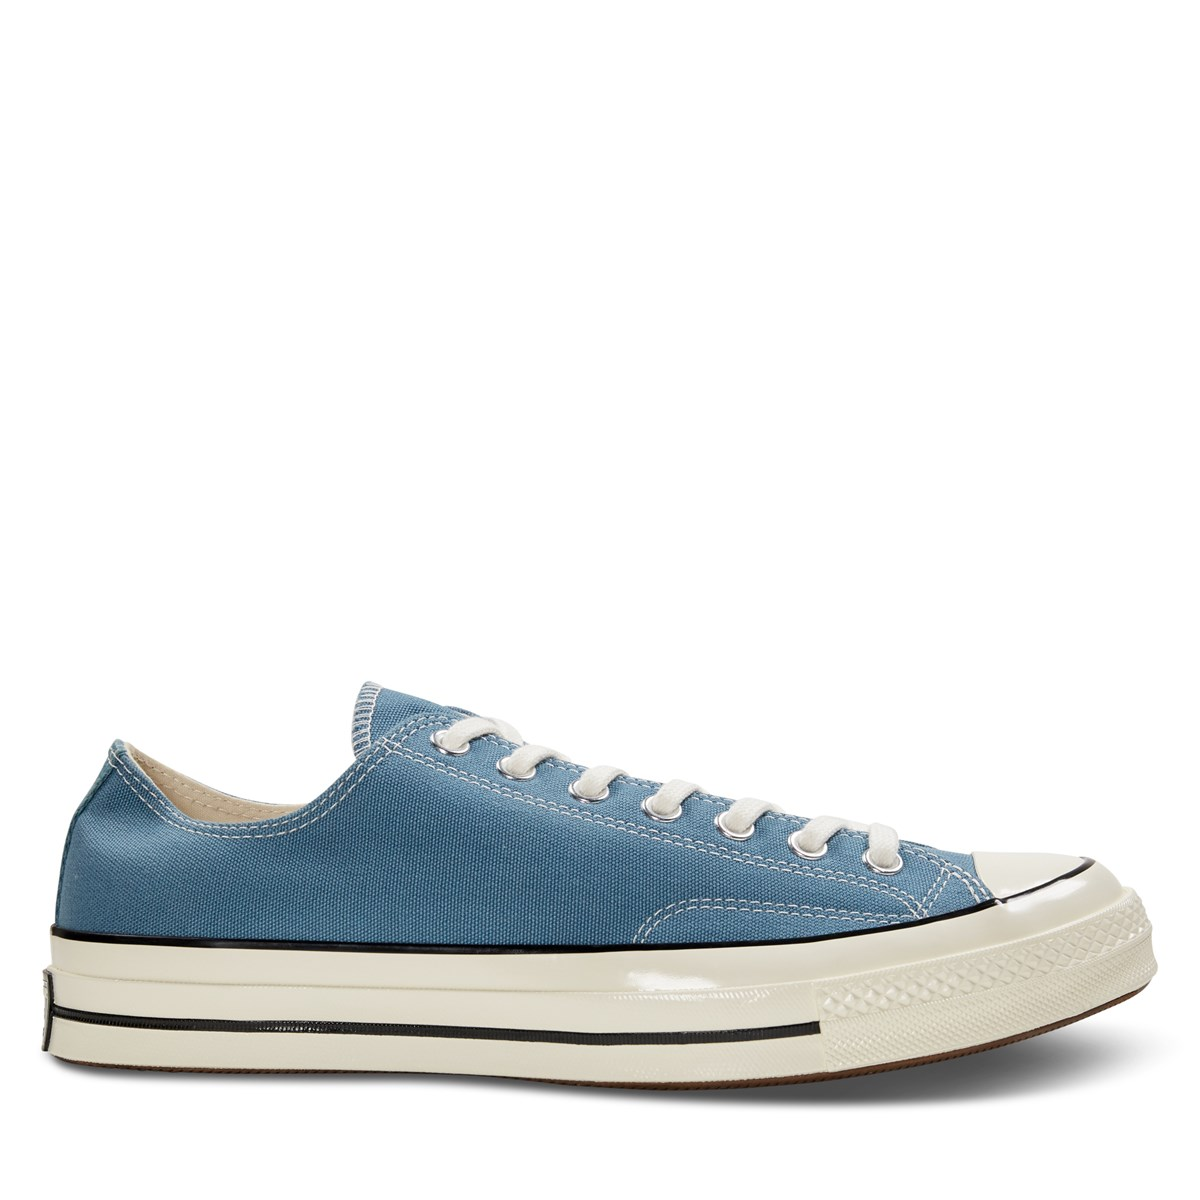 Chuck Taylor All Star 70 Vintage Low Top Sneakers in Teal